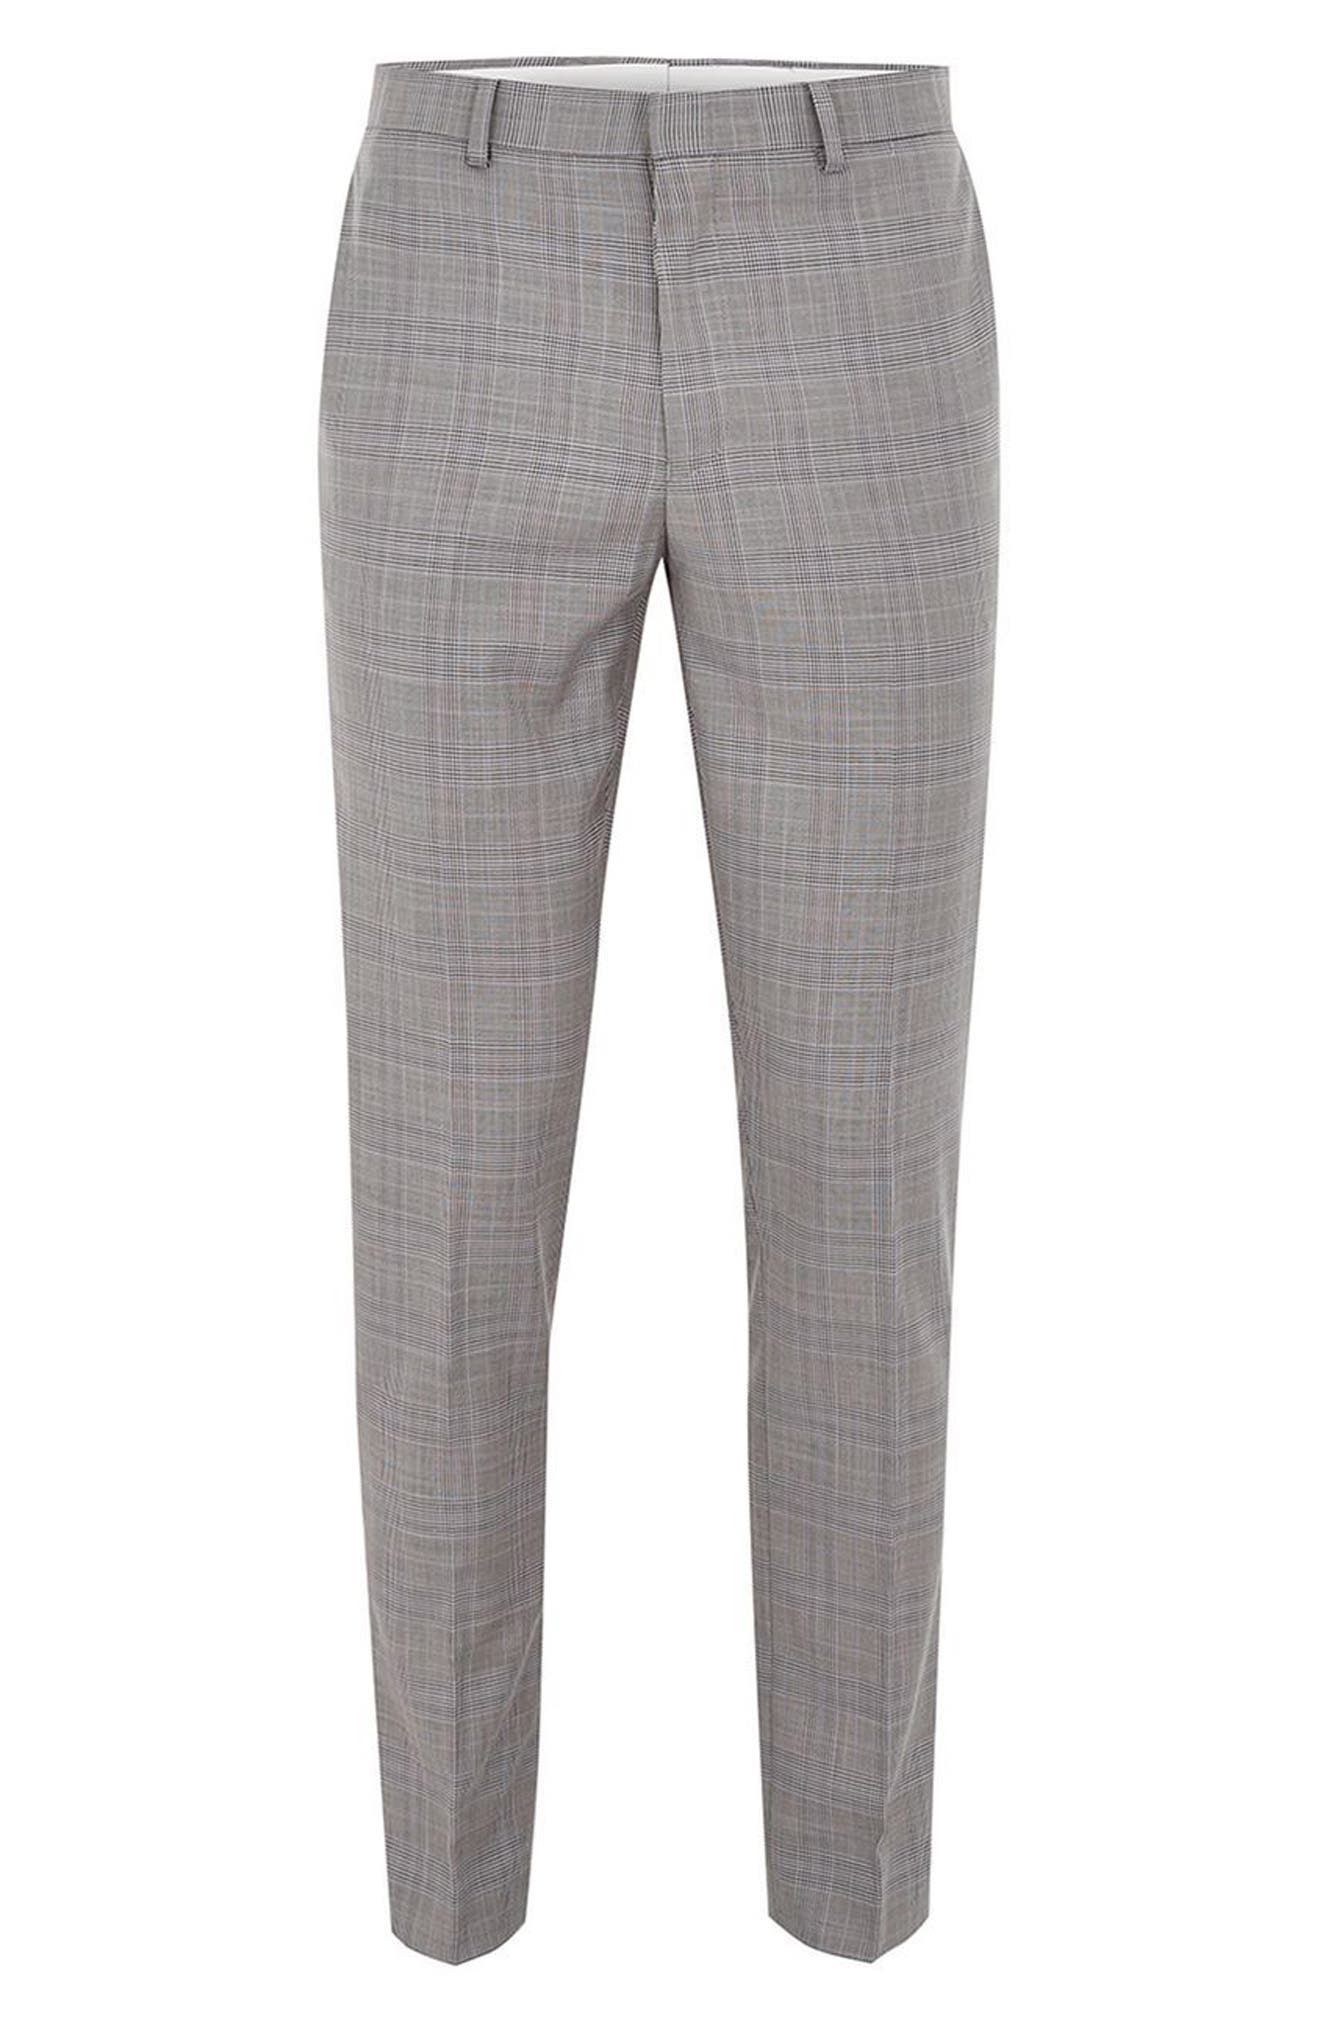 Skinny Fit Check Suit Trousers,                             Alternate thumbnail 4, color,                             Grey Multi